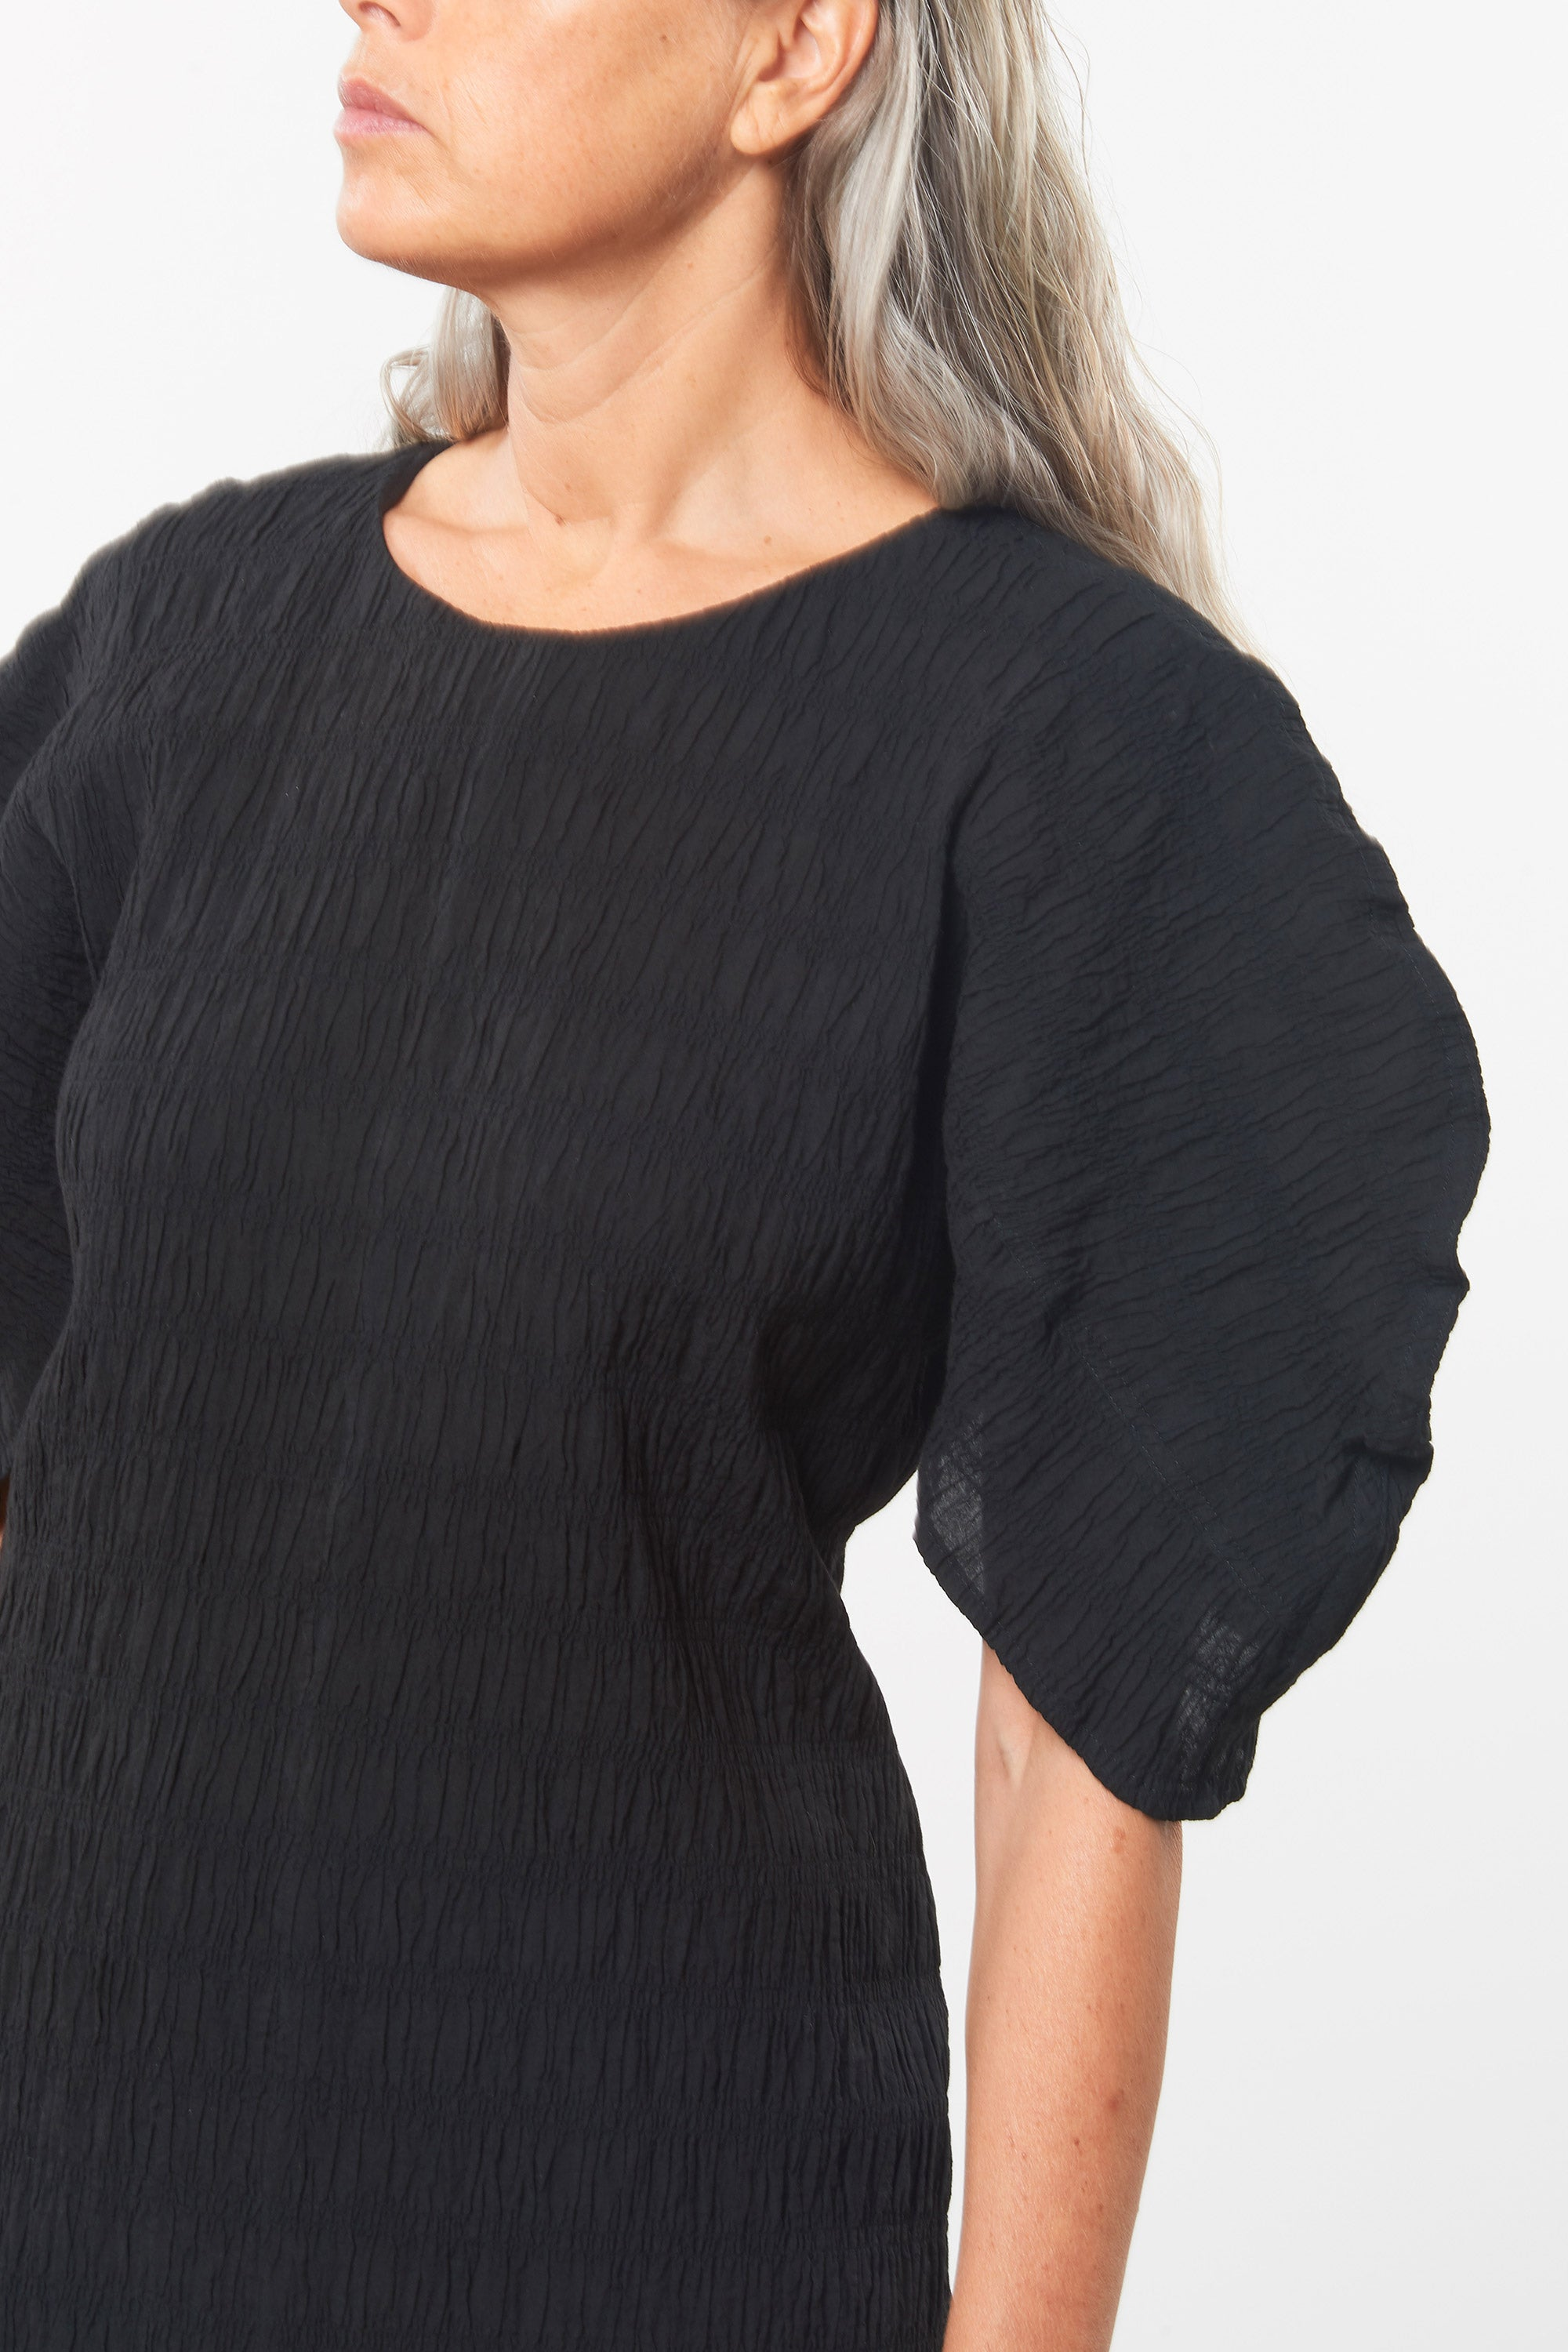 Mara Hoffman Black Aranza dress in organic cotton (sleeve detail)